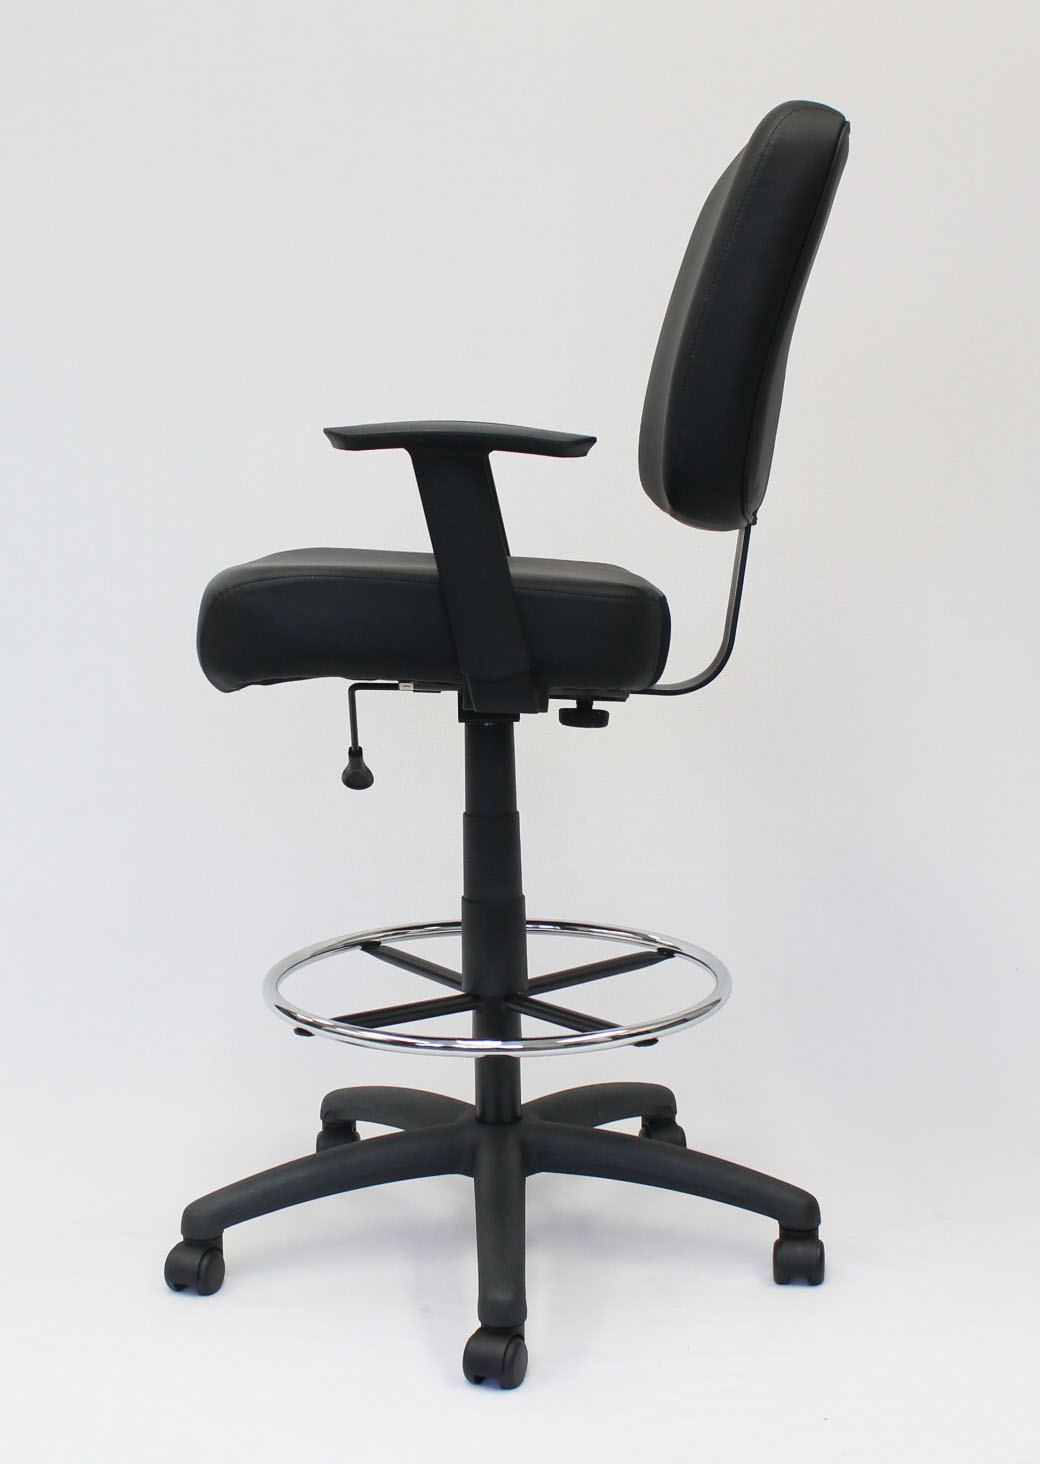 Boss Oversized Drafting Stool with Foot Rest Black & Boss Oversized Drafting Stool with Foot Rest Black u2013 BossChair